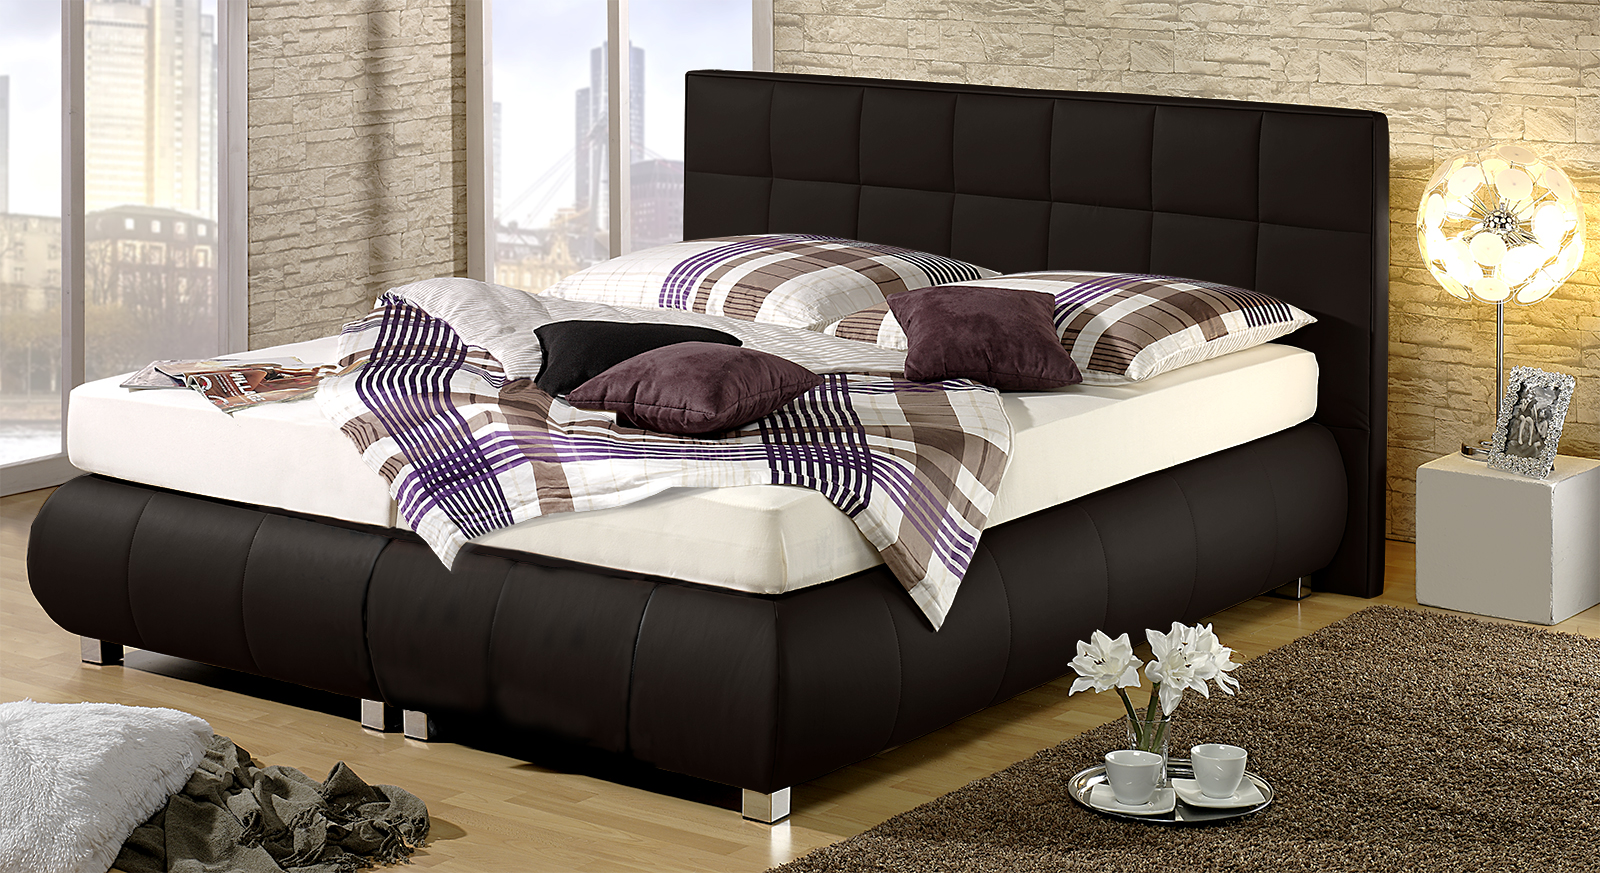 boxspringbett mit kunstleder bezug seattle. Black Bedroom Furniture Sets. Home Design Ideas